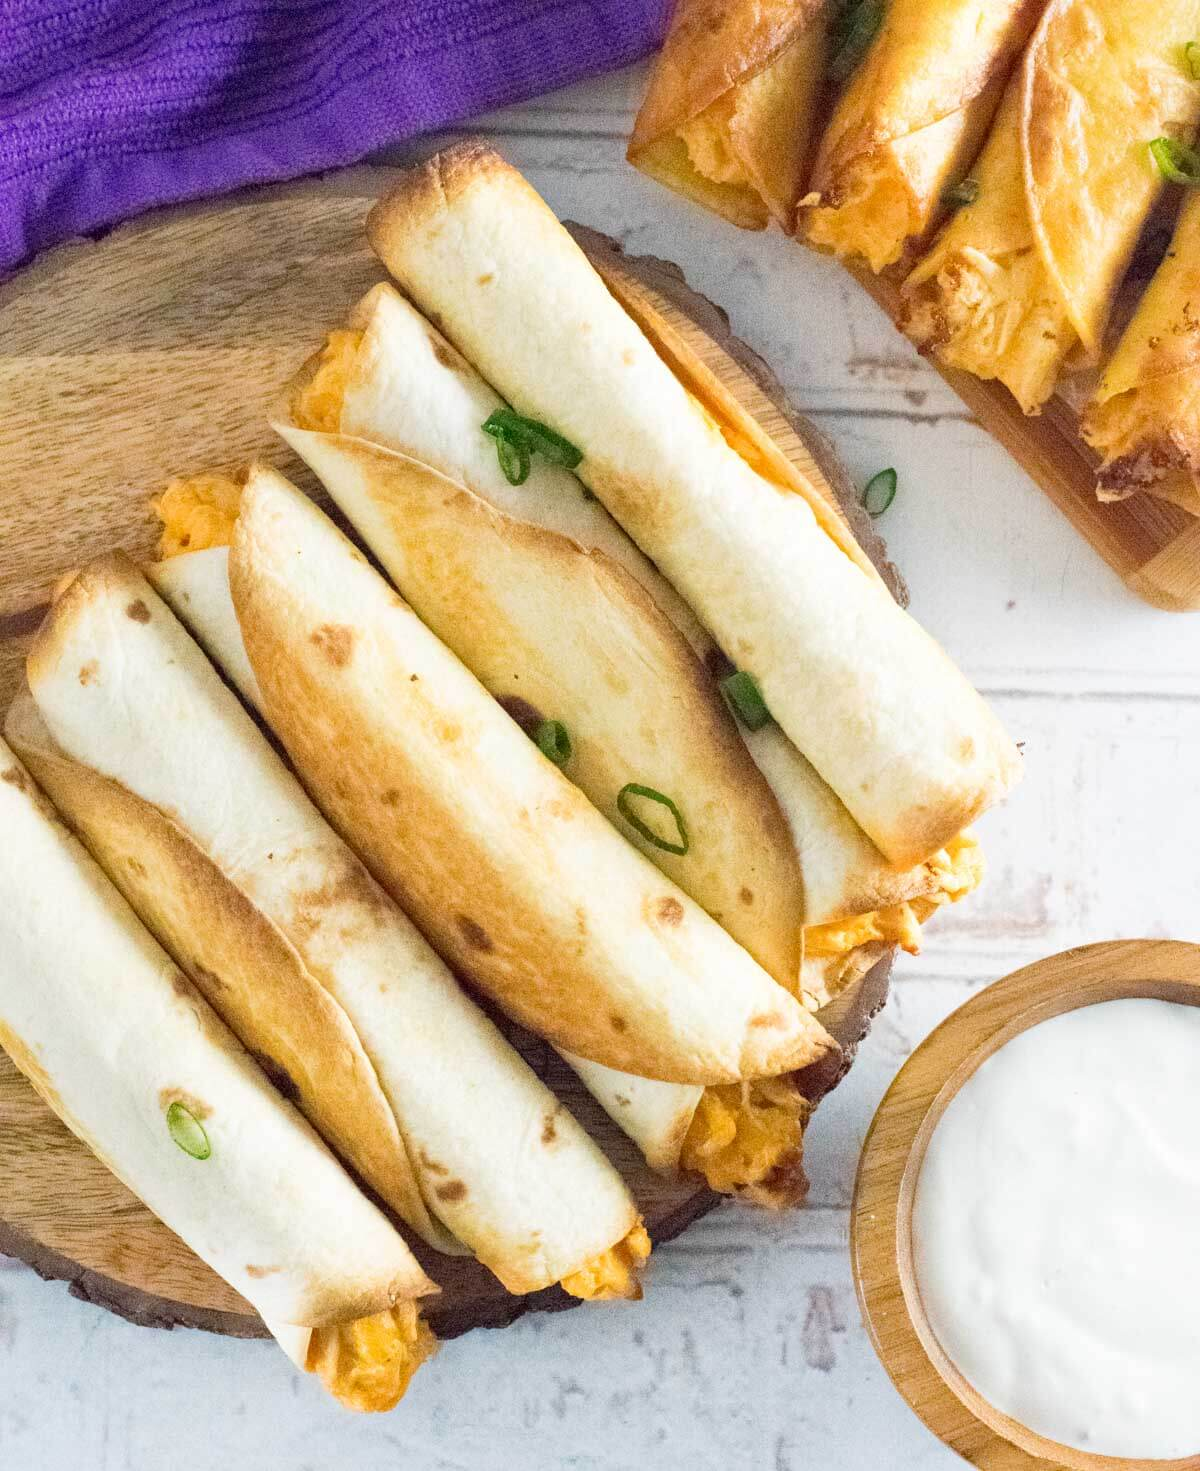 Baked buffalo chicken taquitos on wooden tray shown from above.